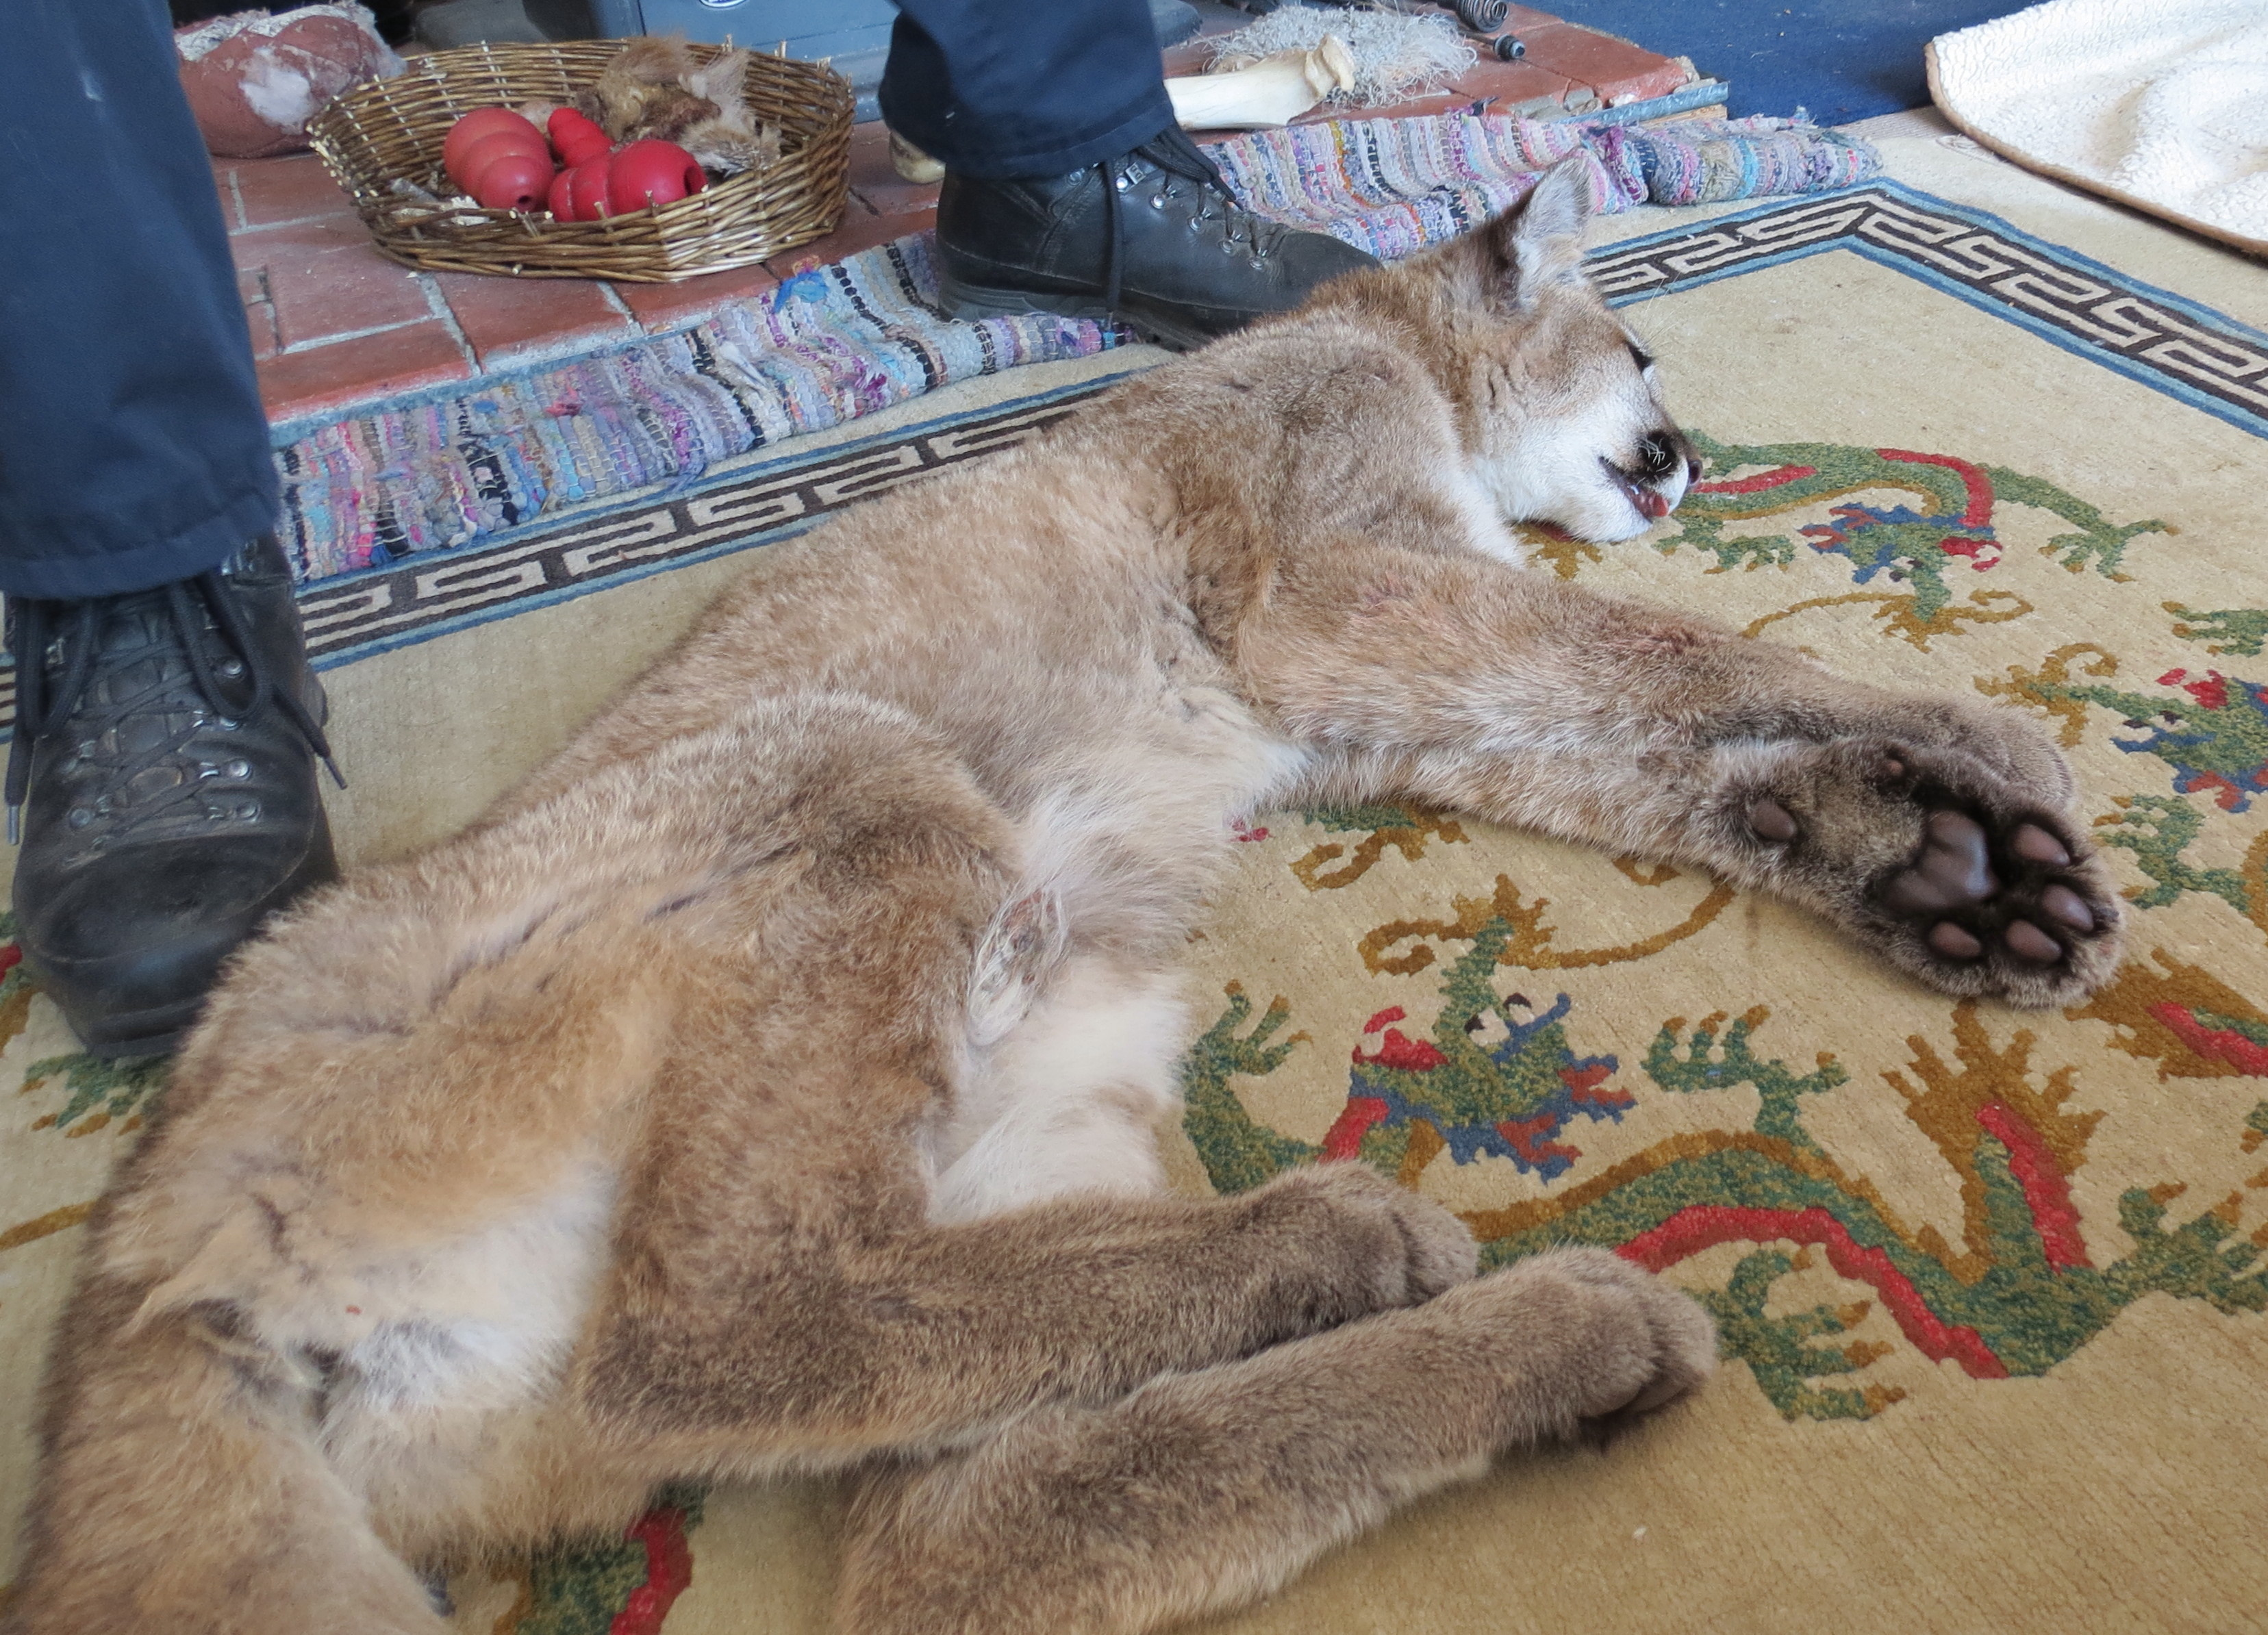 cougar discovered inside a home  chewing on a dog toy